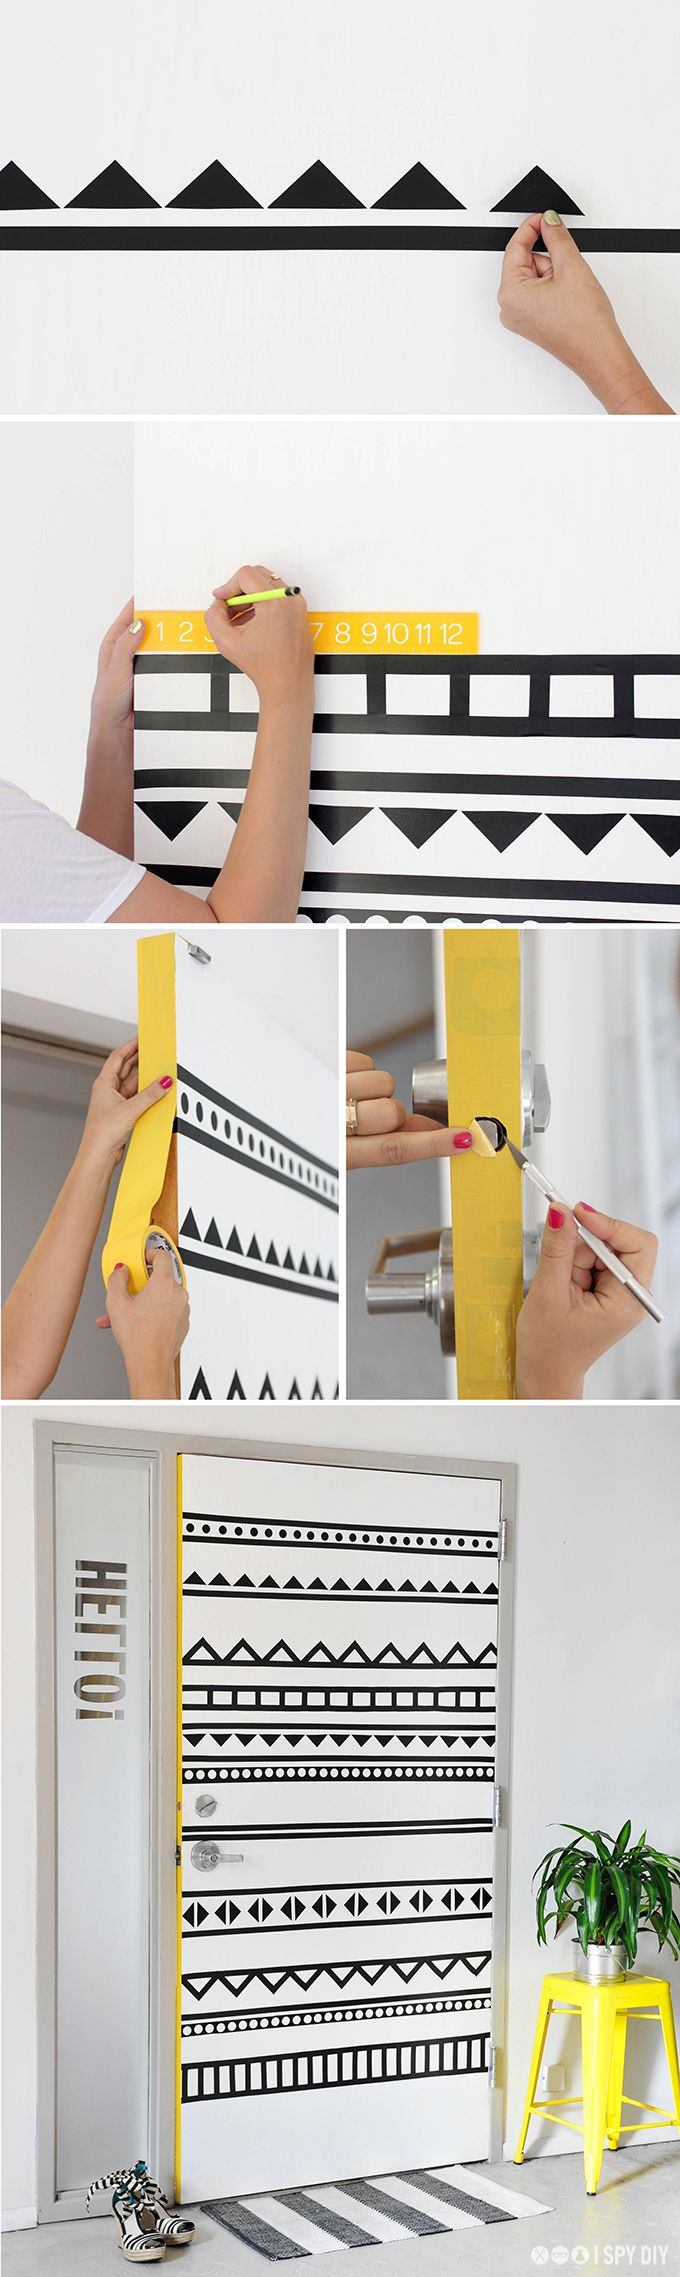 37 diy washi tape decorating projects you will love diy washi tape decorating projects the geometric pattern amipublicfo Choice Image